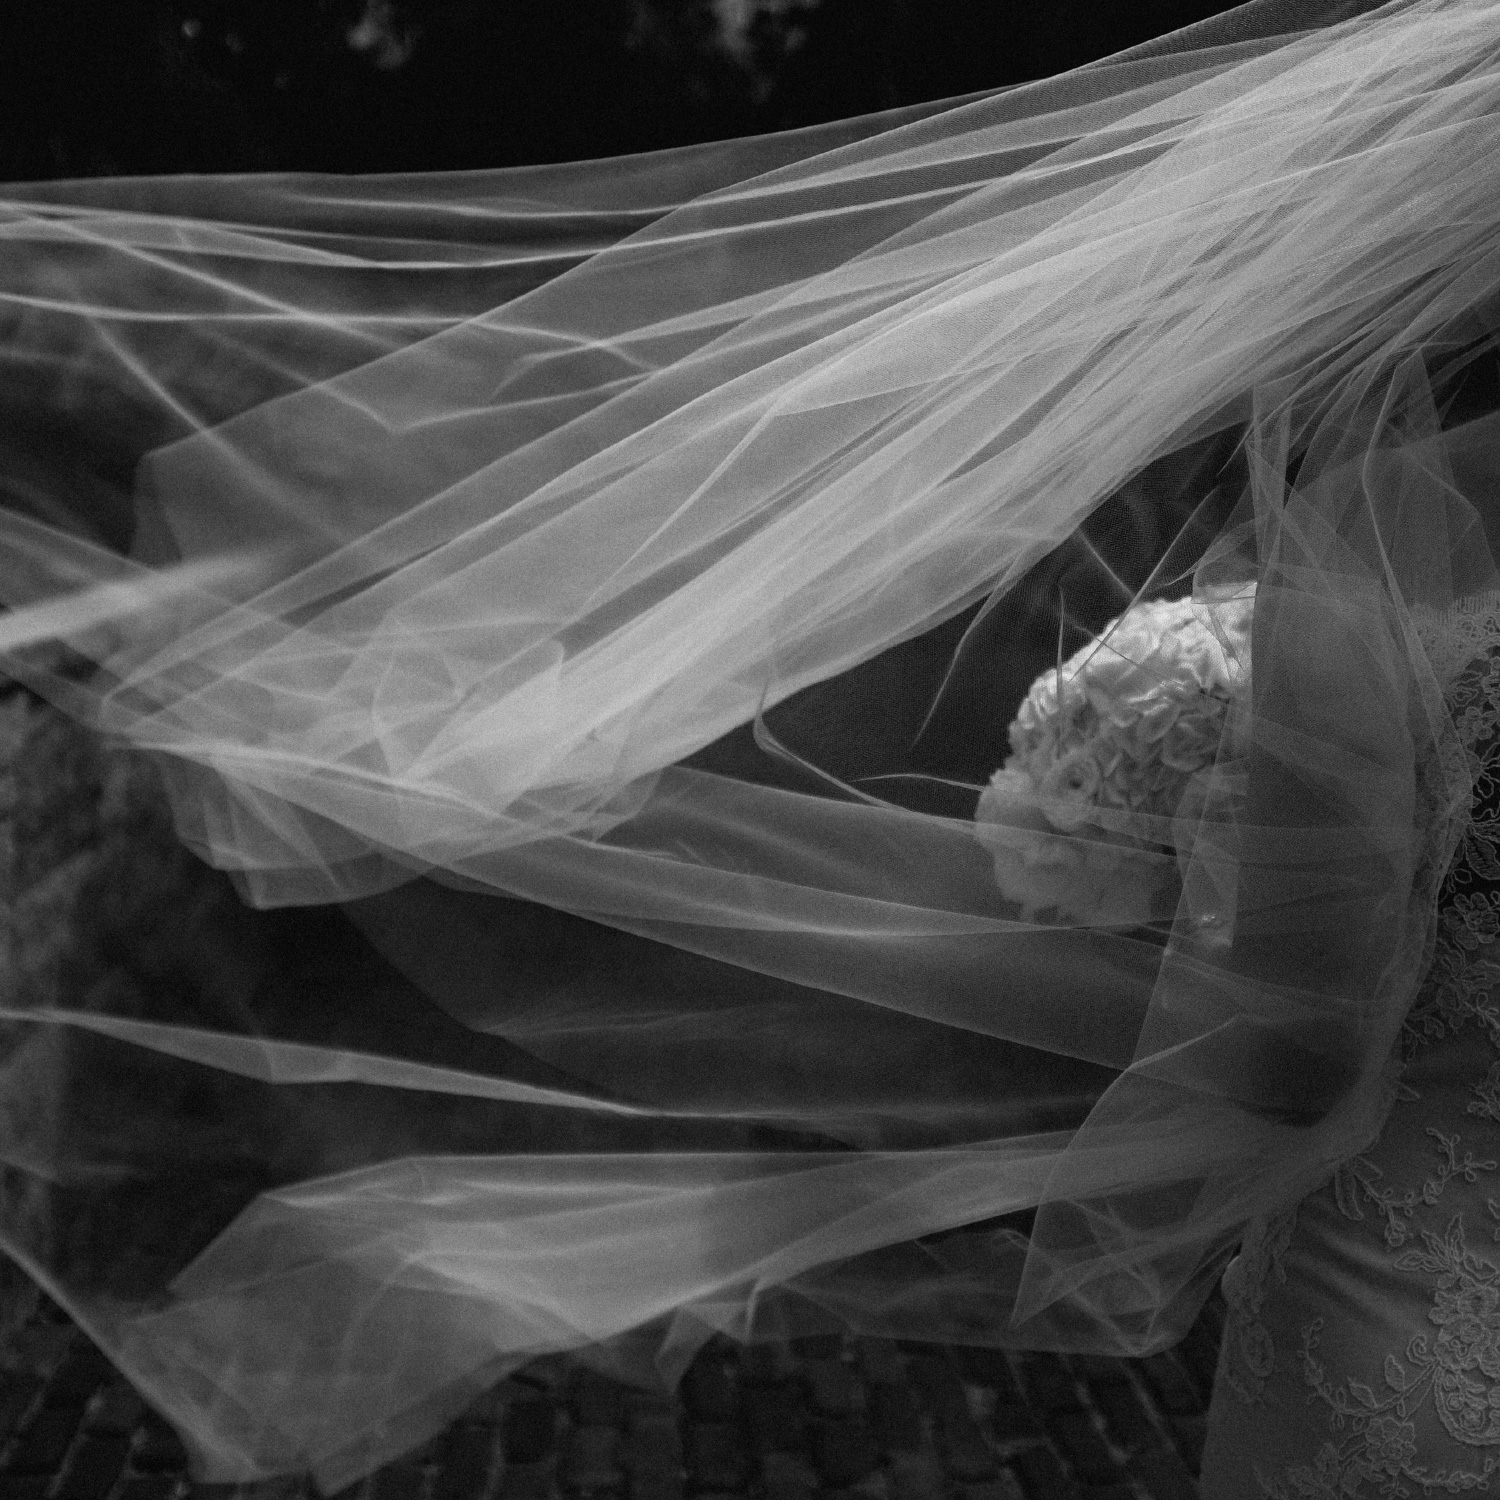 Bride veil shot on fuji x100t camera review